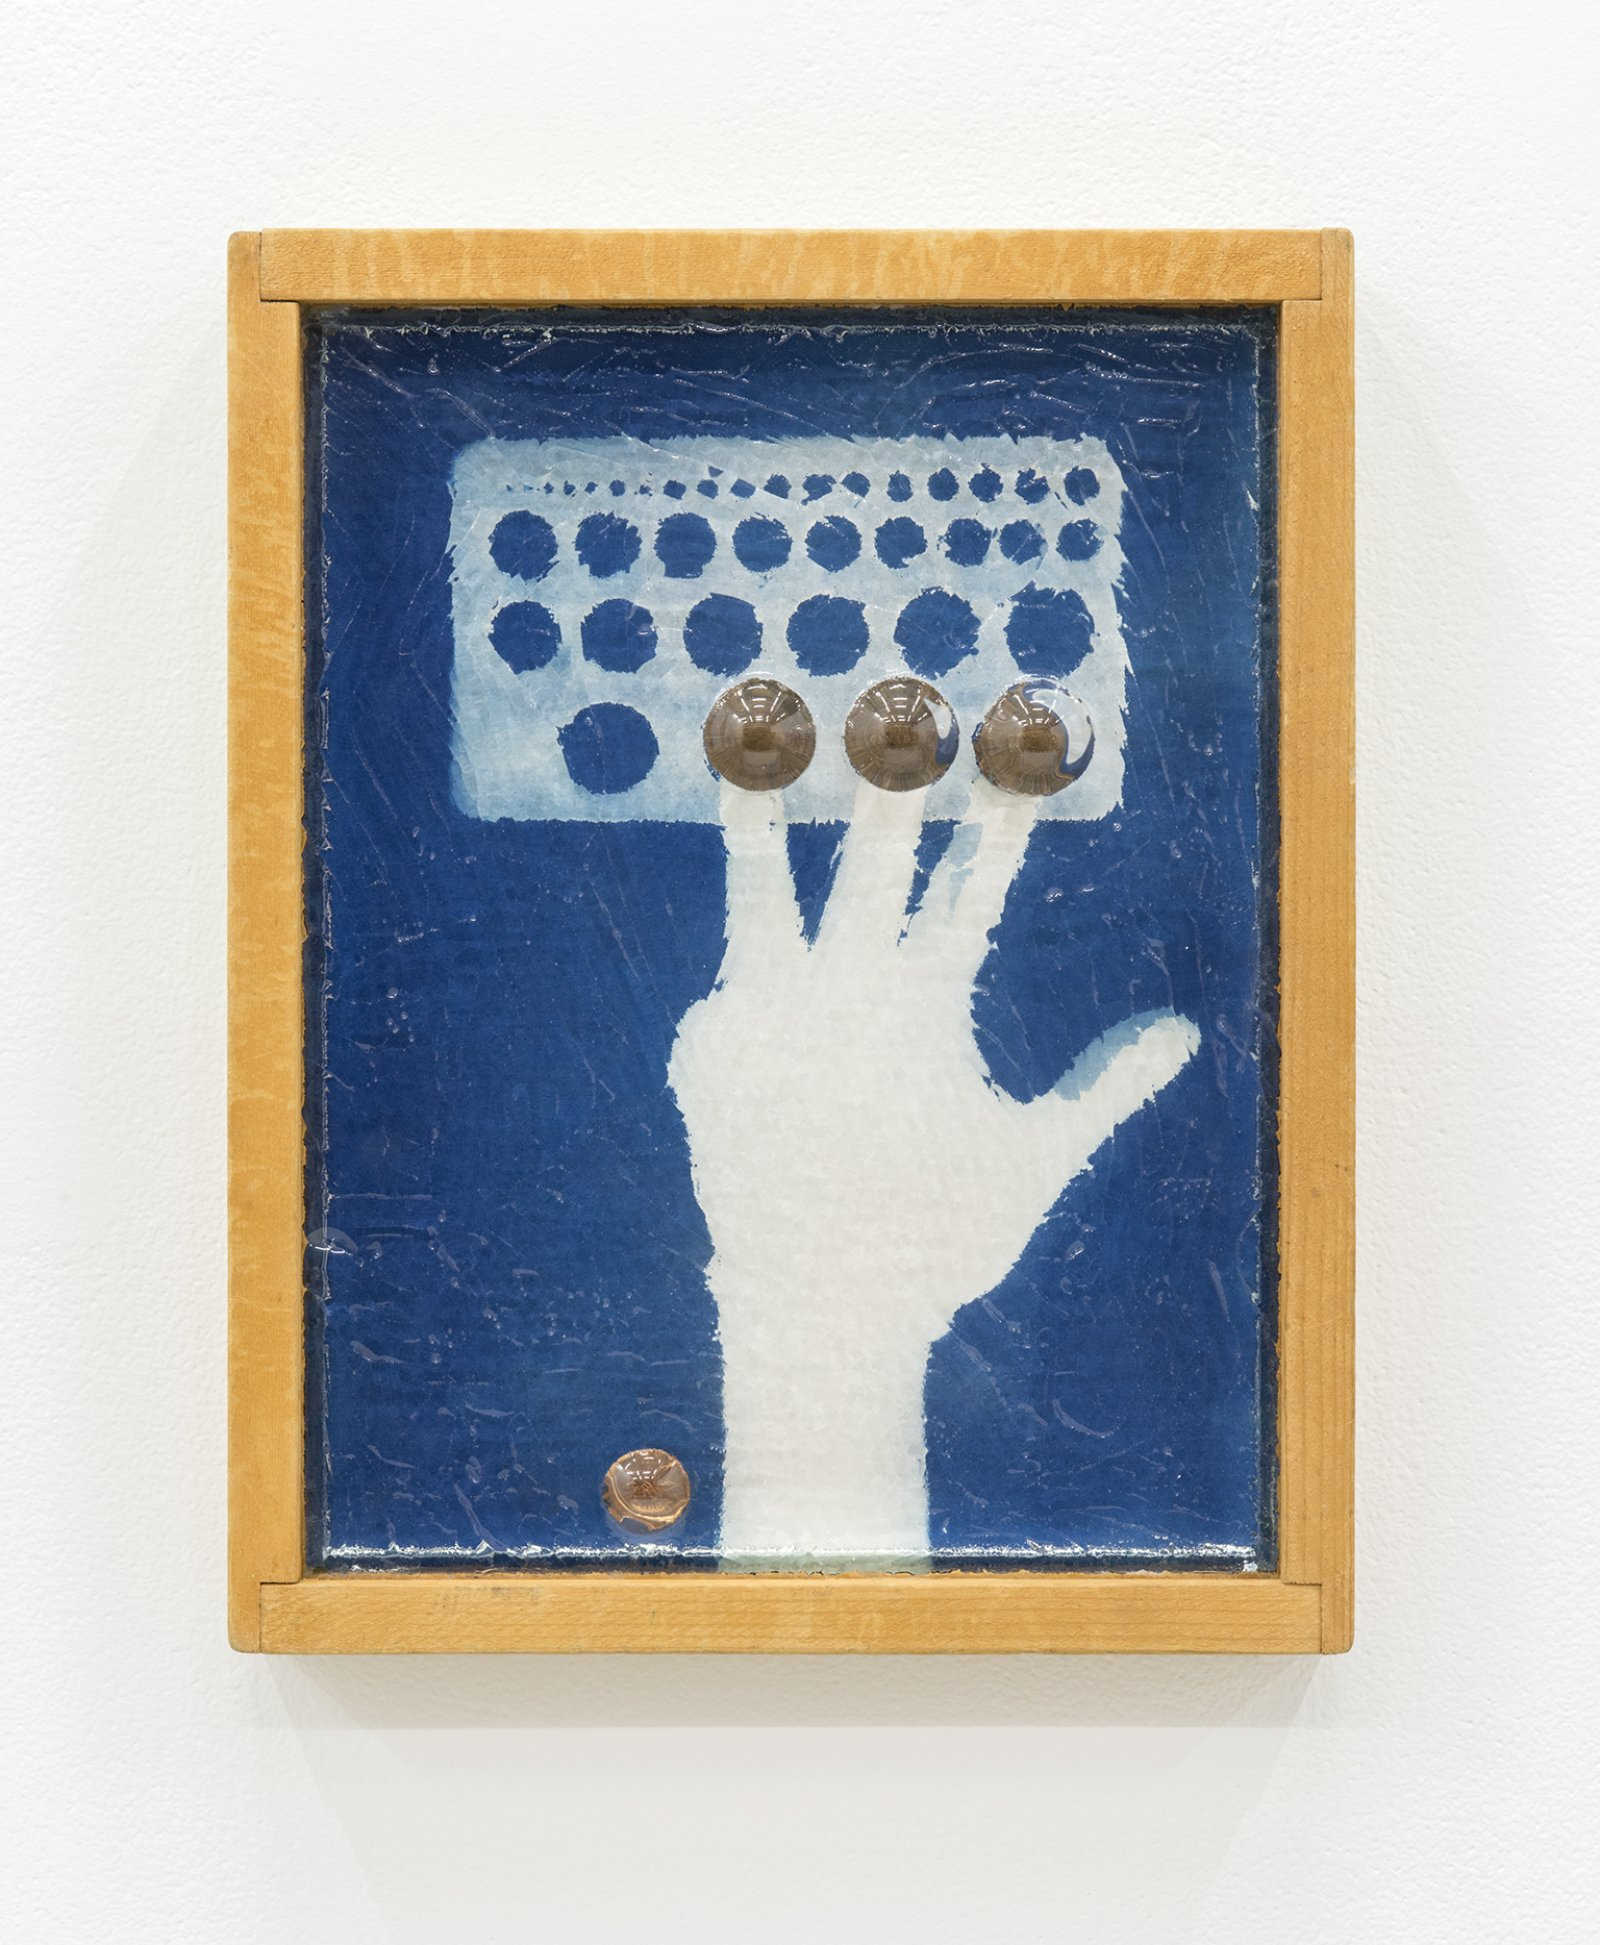 Julia Feyrer, 2012, 1913, 1914, 1915..., 2013, custom fused glass, rust stained wood frame, canadian pennies, mirror inset, magnets, cyanotype, 15 x 12 in. (38 x 30 cm)